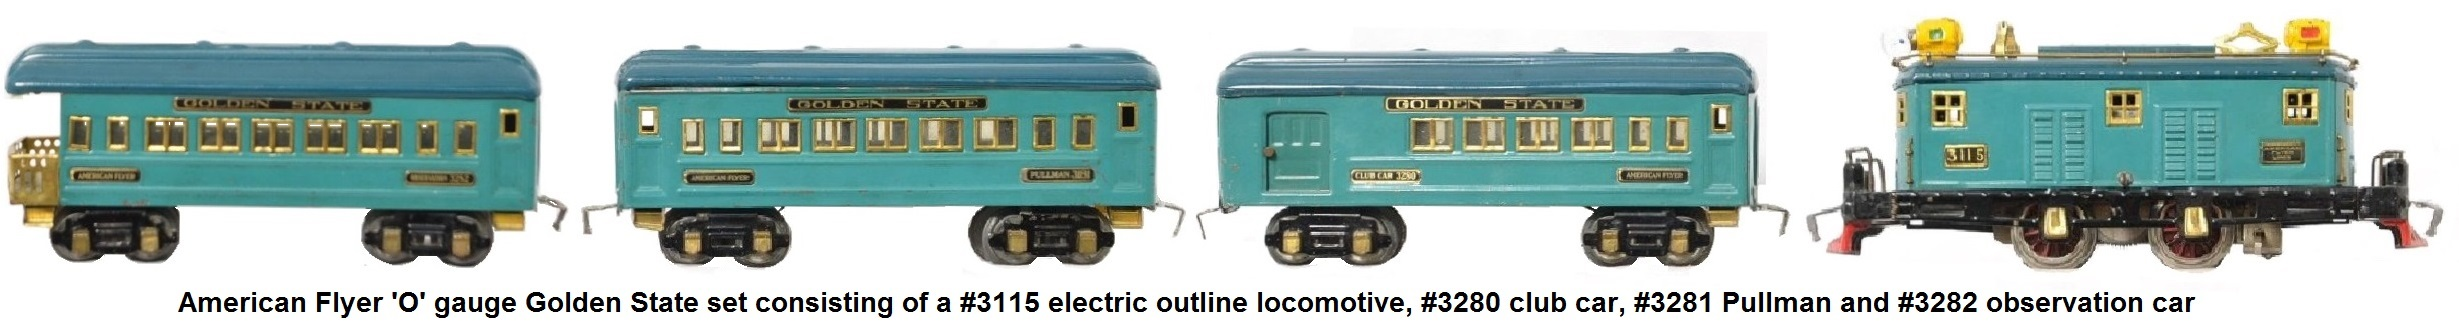 American Flyer 'O' gauge prewar Golden State set consisting of a #3115 electric locomotive, #3280 club, #3281 Pullman and #3282 observation cars